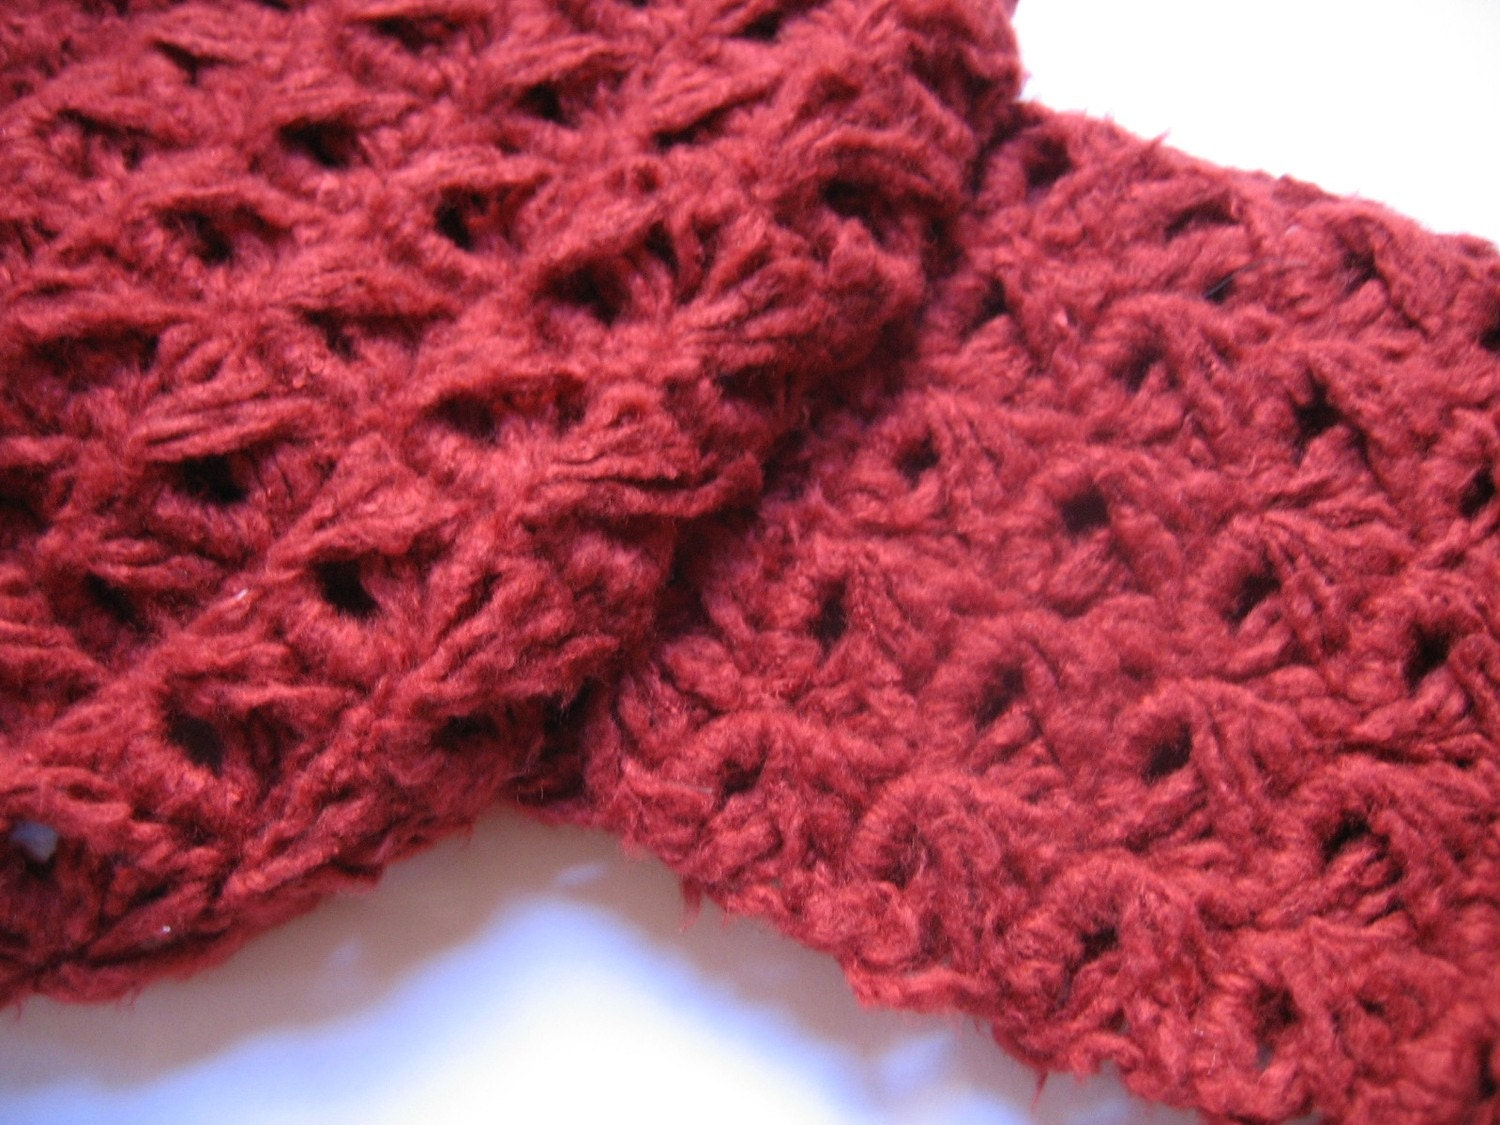 Crochet Pattern: Broomstick Lace Summer Scarf